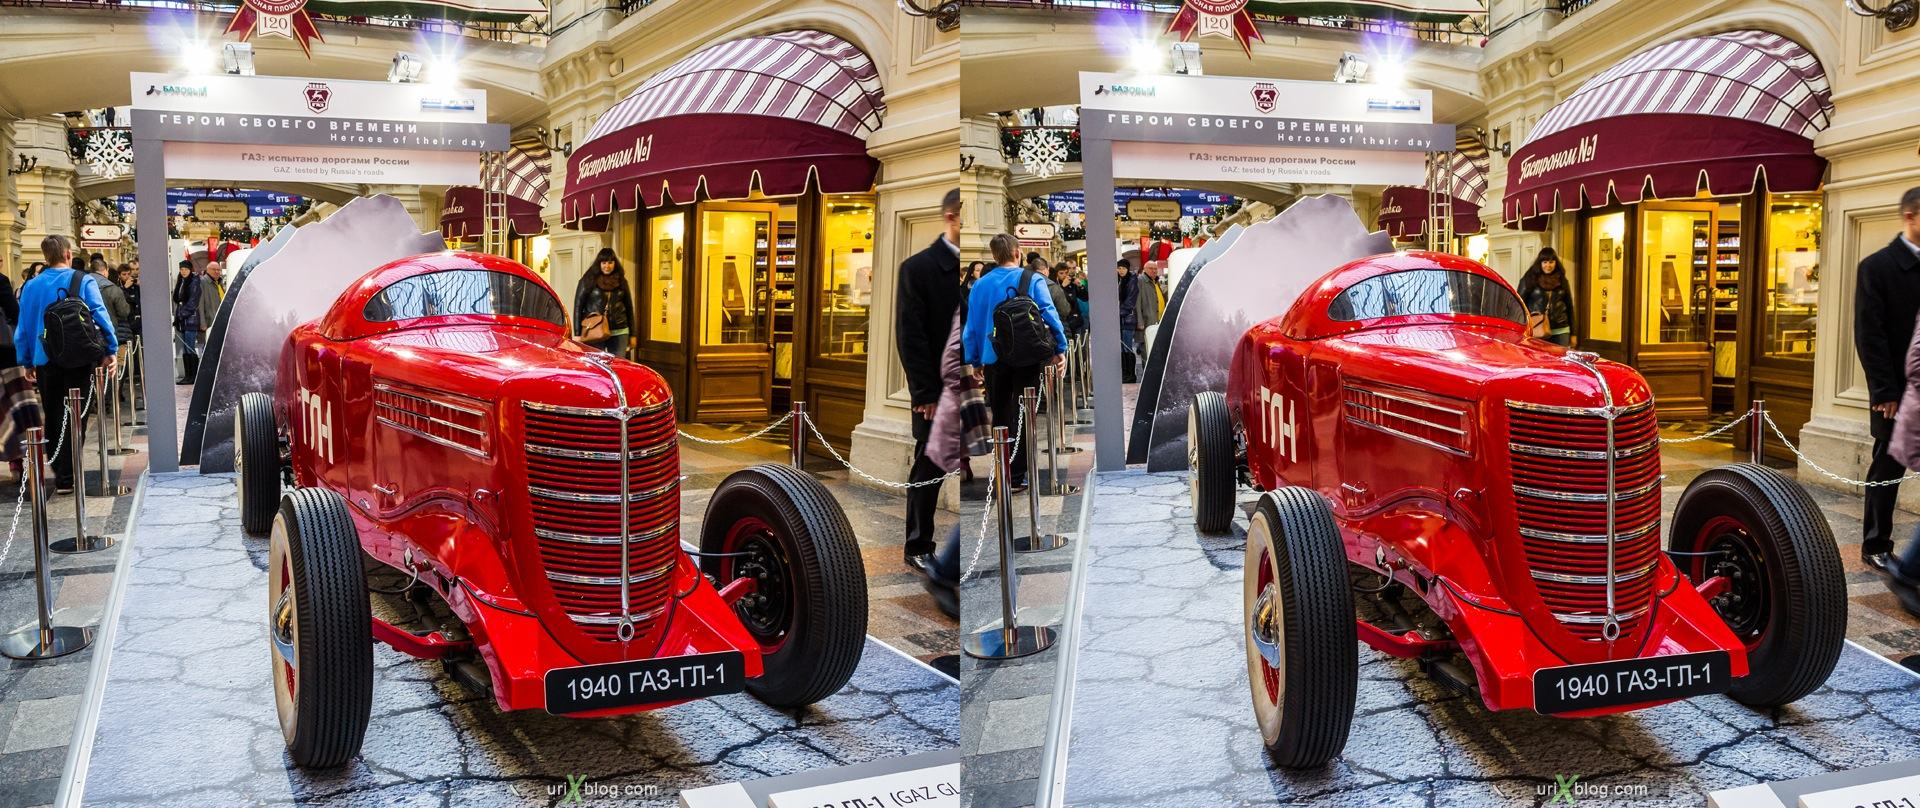 2013, Moscow, Russia, GAZ-GL-1, GUM, old, automobile, vehicle, exhibition, shop, mall, 3D, stereo pair, cross-eyed, crossview, cross view stereo pair, stereoscopic